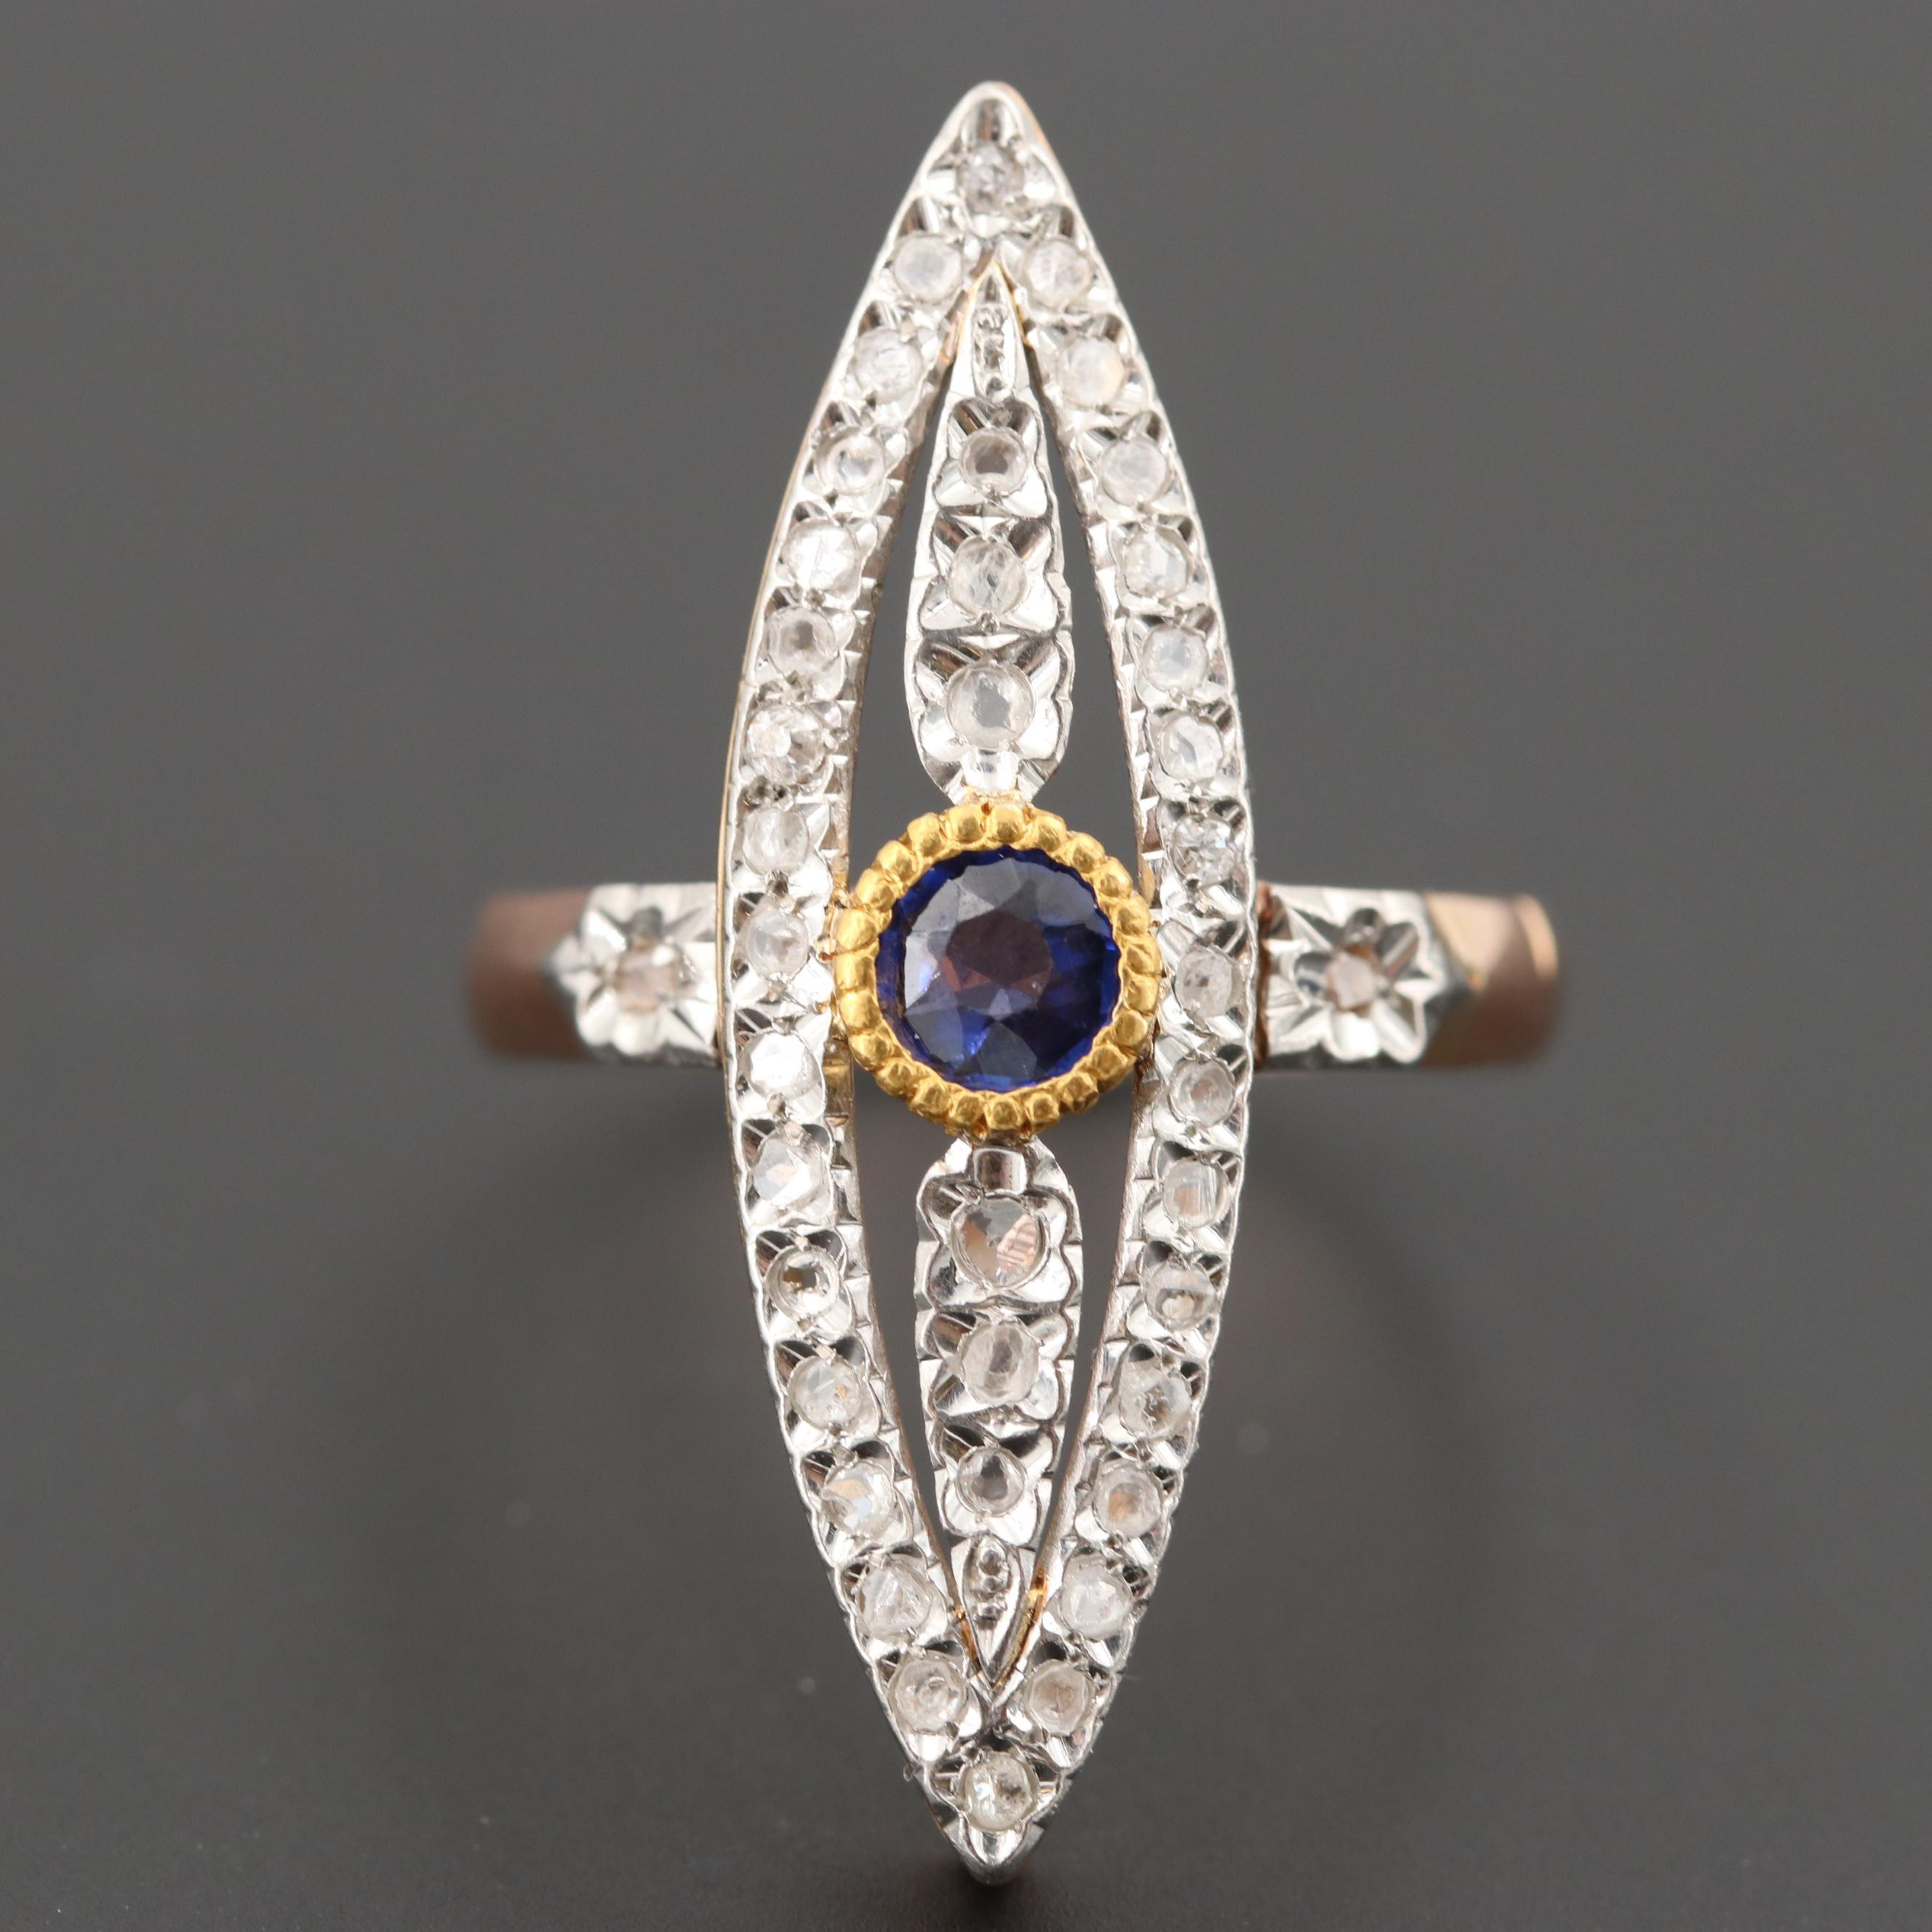 Early 1900s 18K Rose Gold and Platinum Garnet Doublet and Diamond Ring